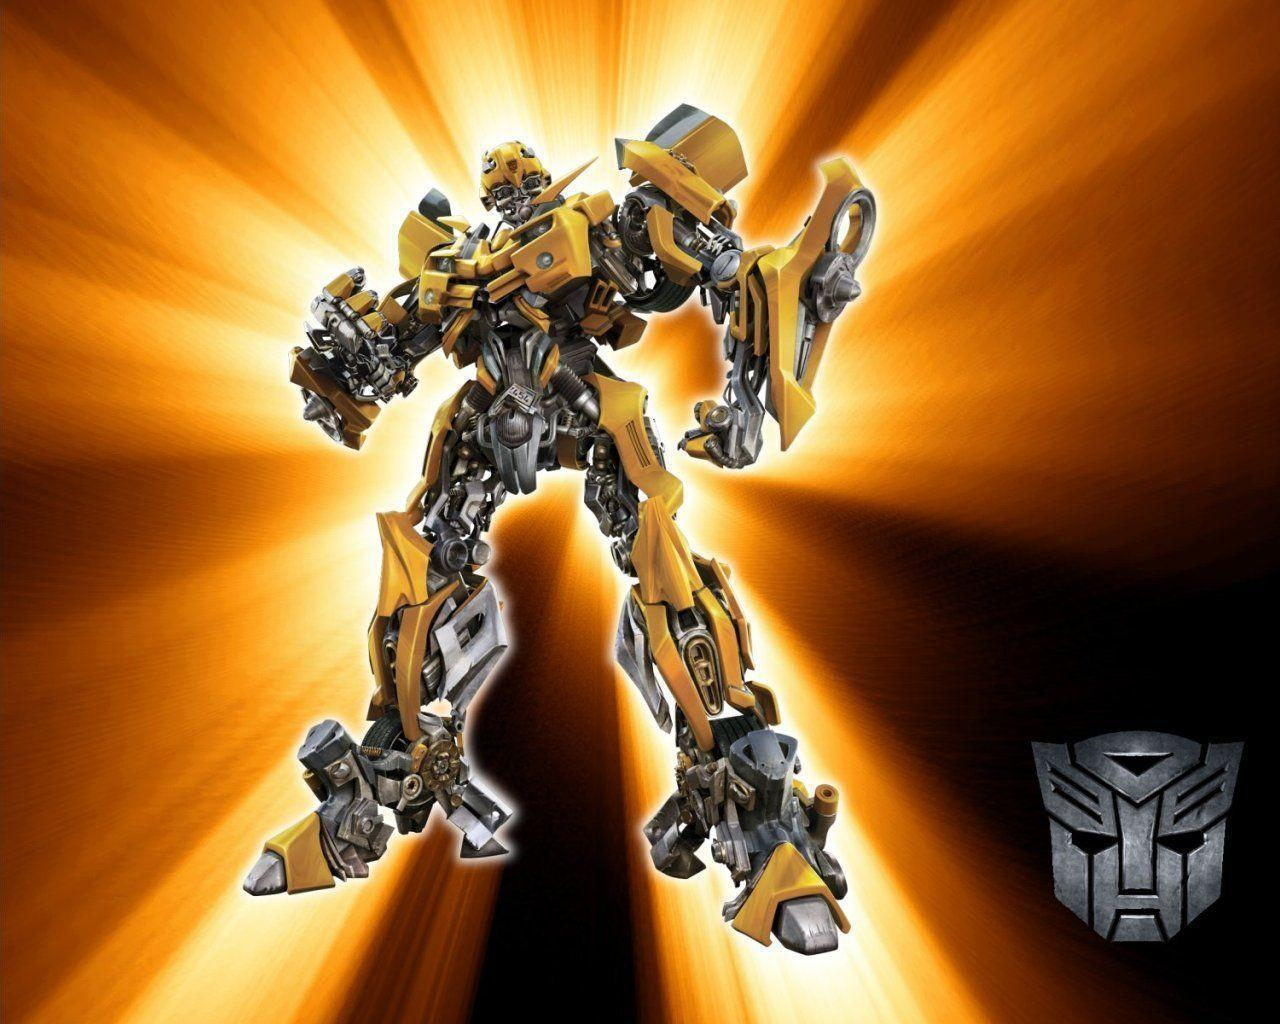 Wallpapers For > Transformers Revenge Of The Fallen Bumblebee